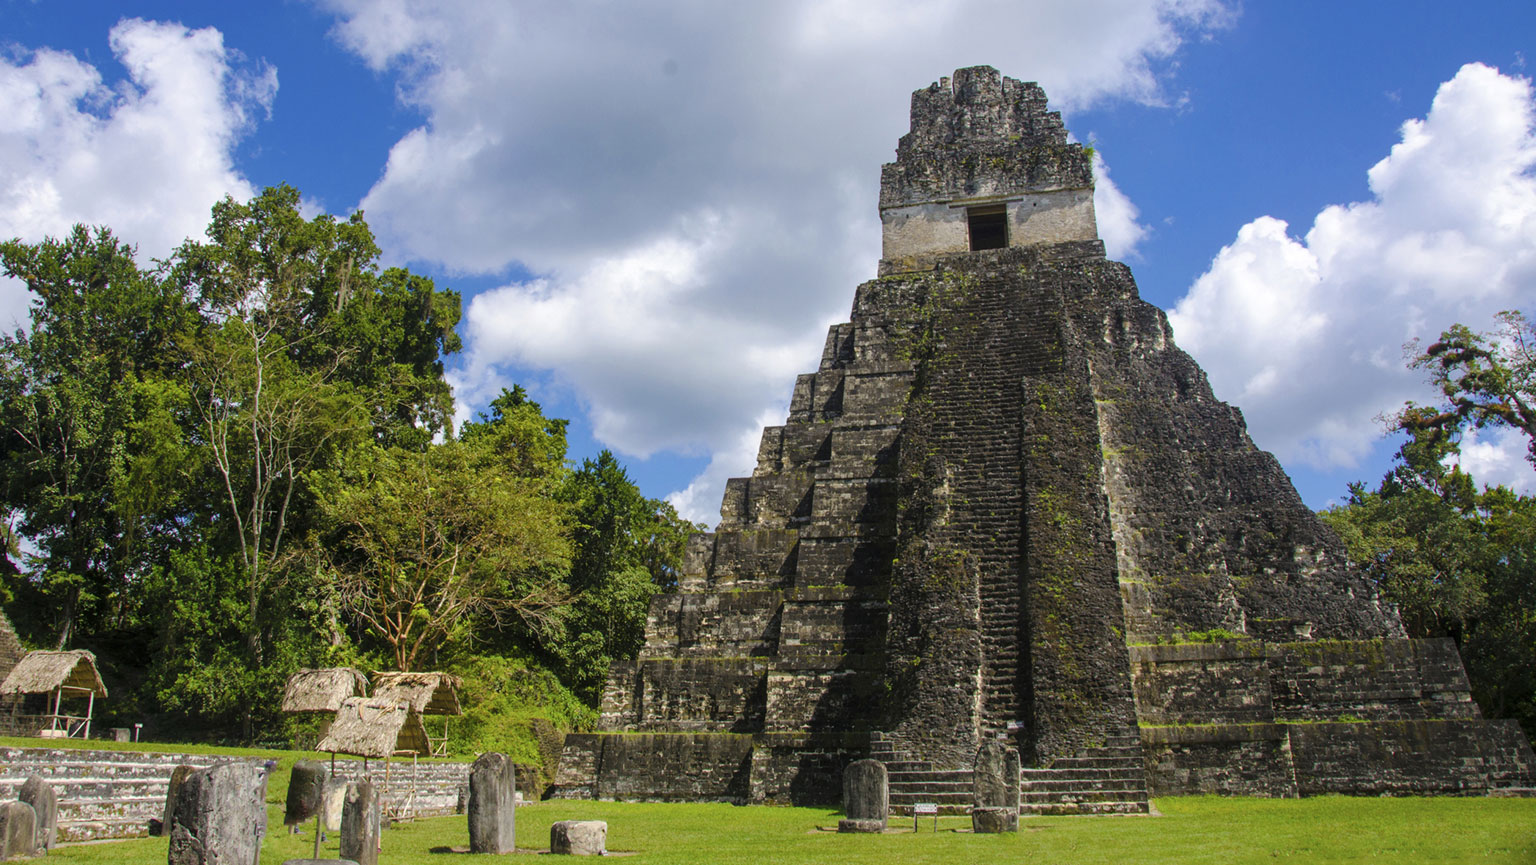 Tikal—Aspiring Capital of the Maya World